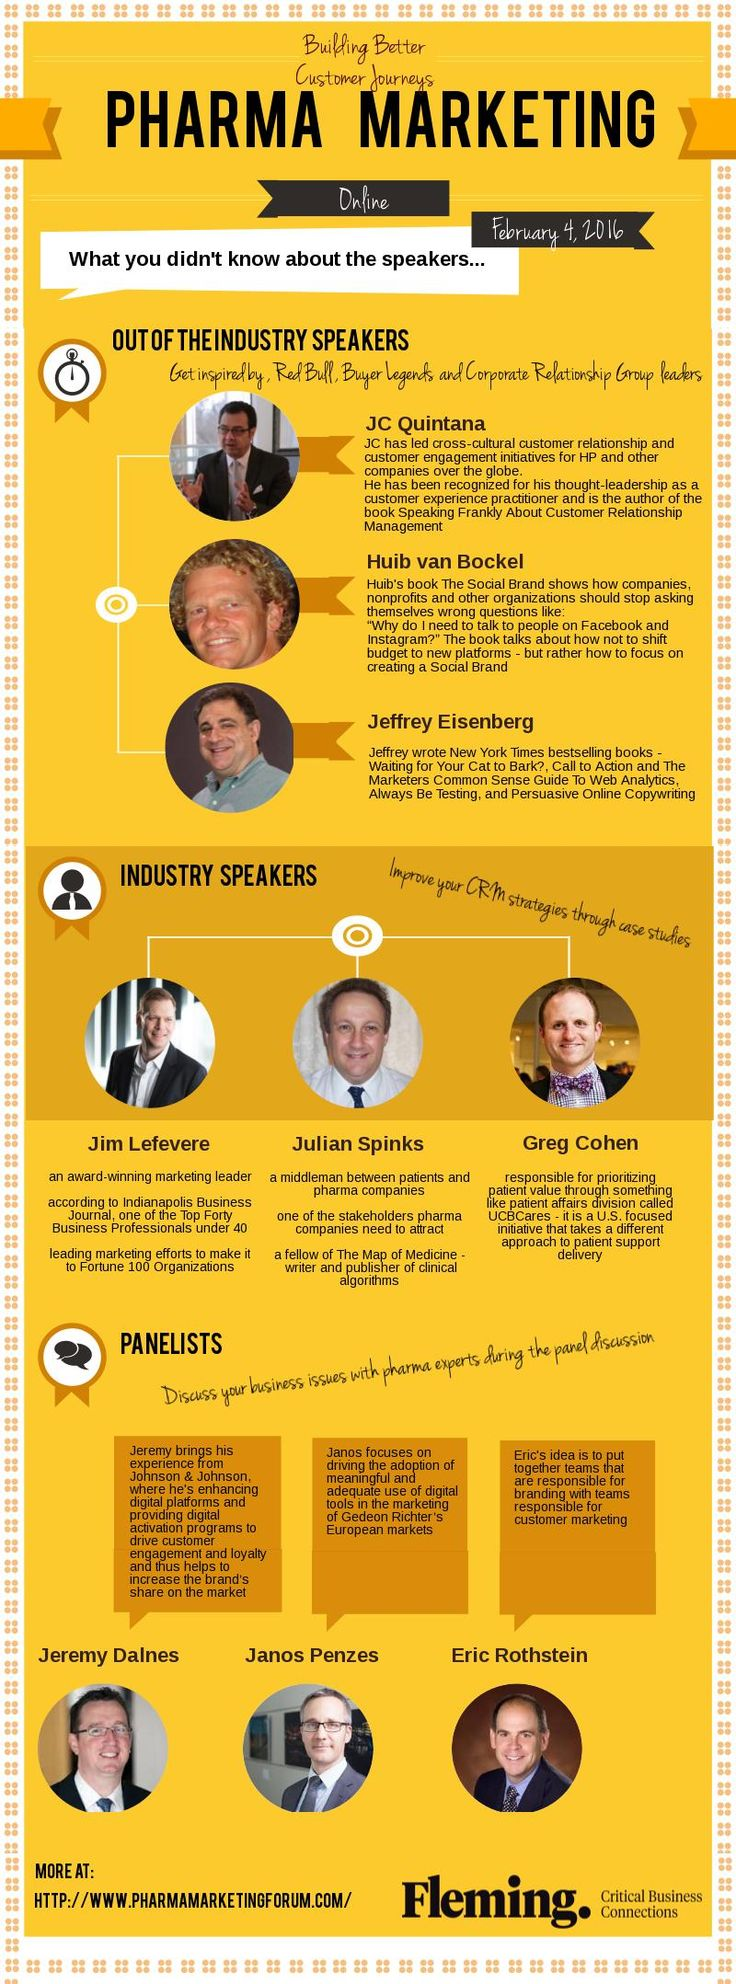 What you didn't know about our speakers...Pharma Marketing: Building Better Customer Journeys  More at: http://www.pharmamarketingforum.com/